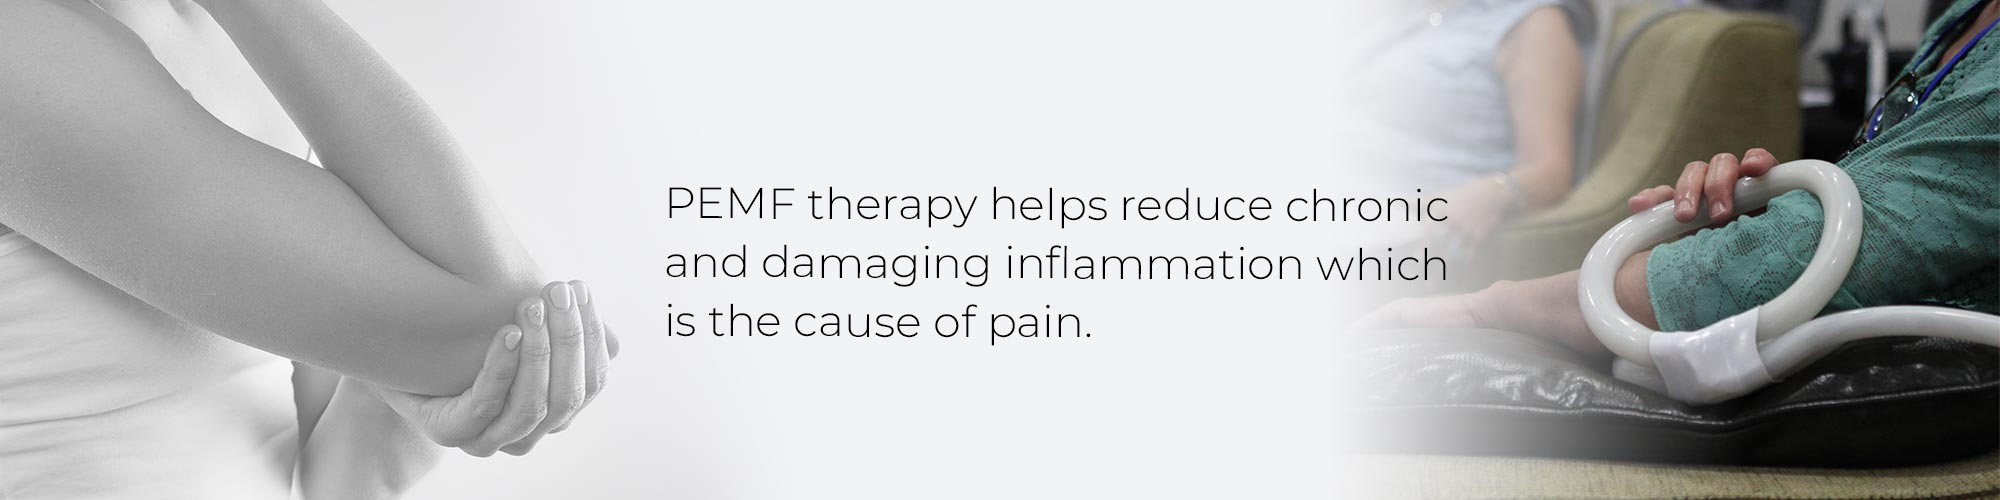 PEMF therapy helps reduce chronic and damaging inflammation which is the cause of pain.